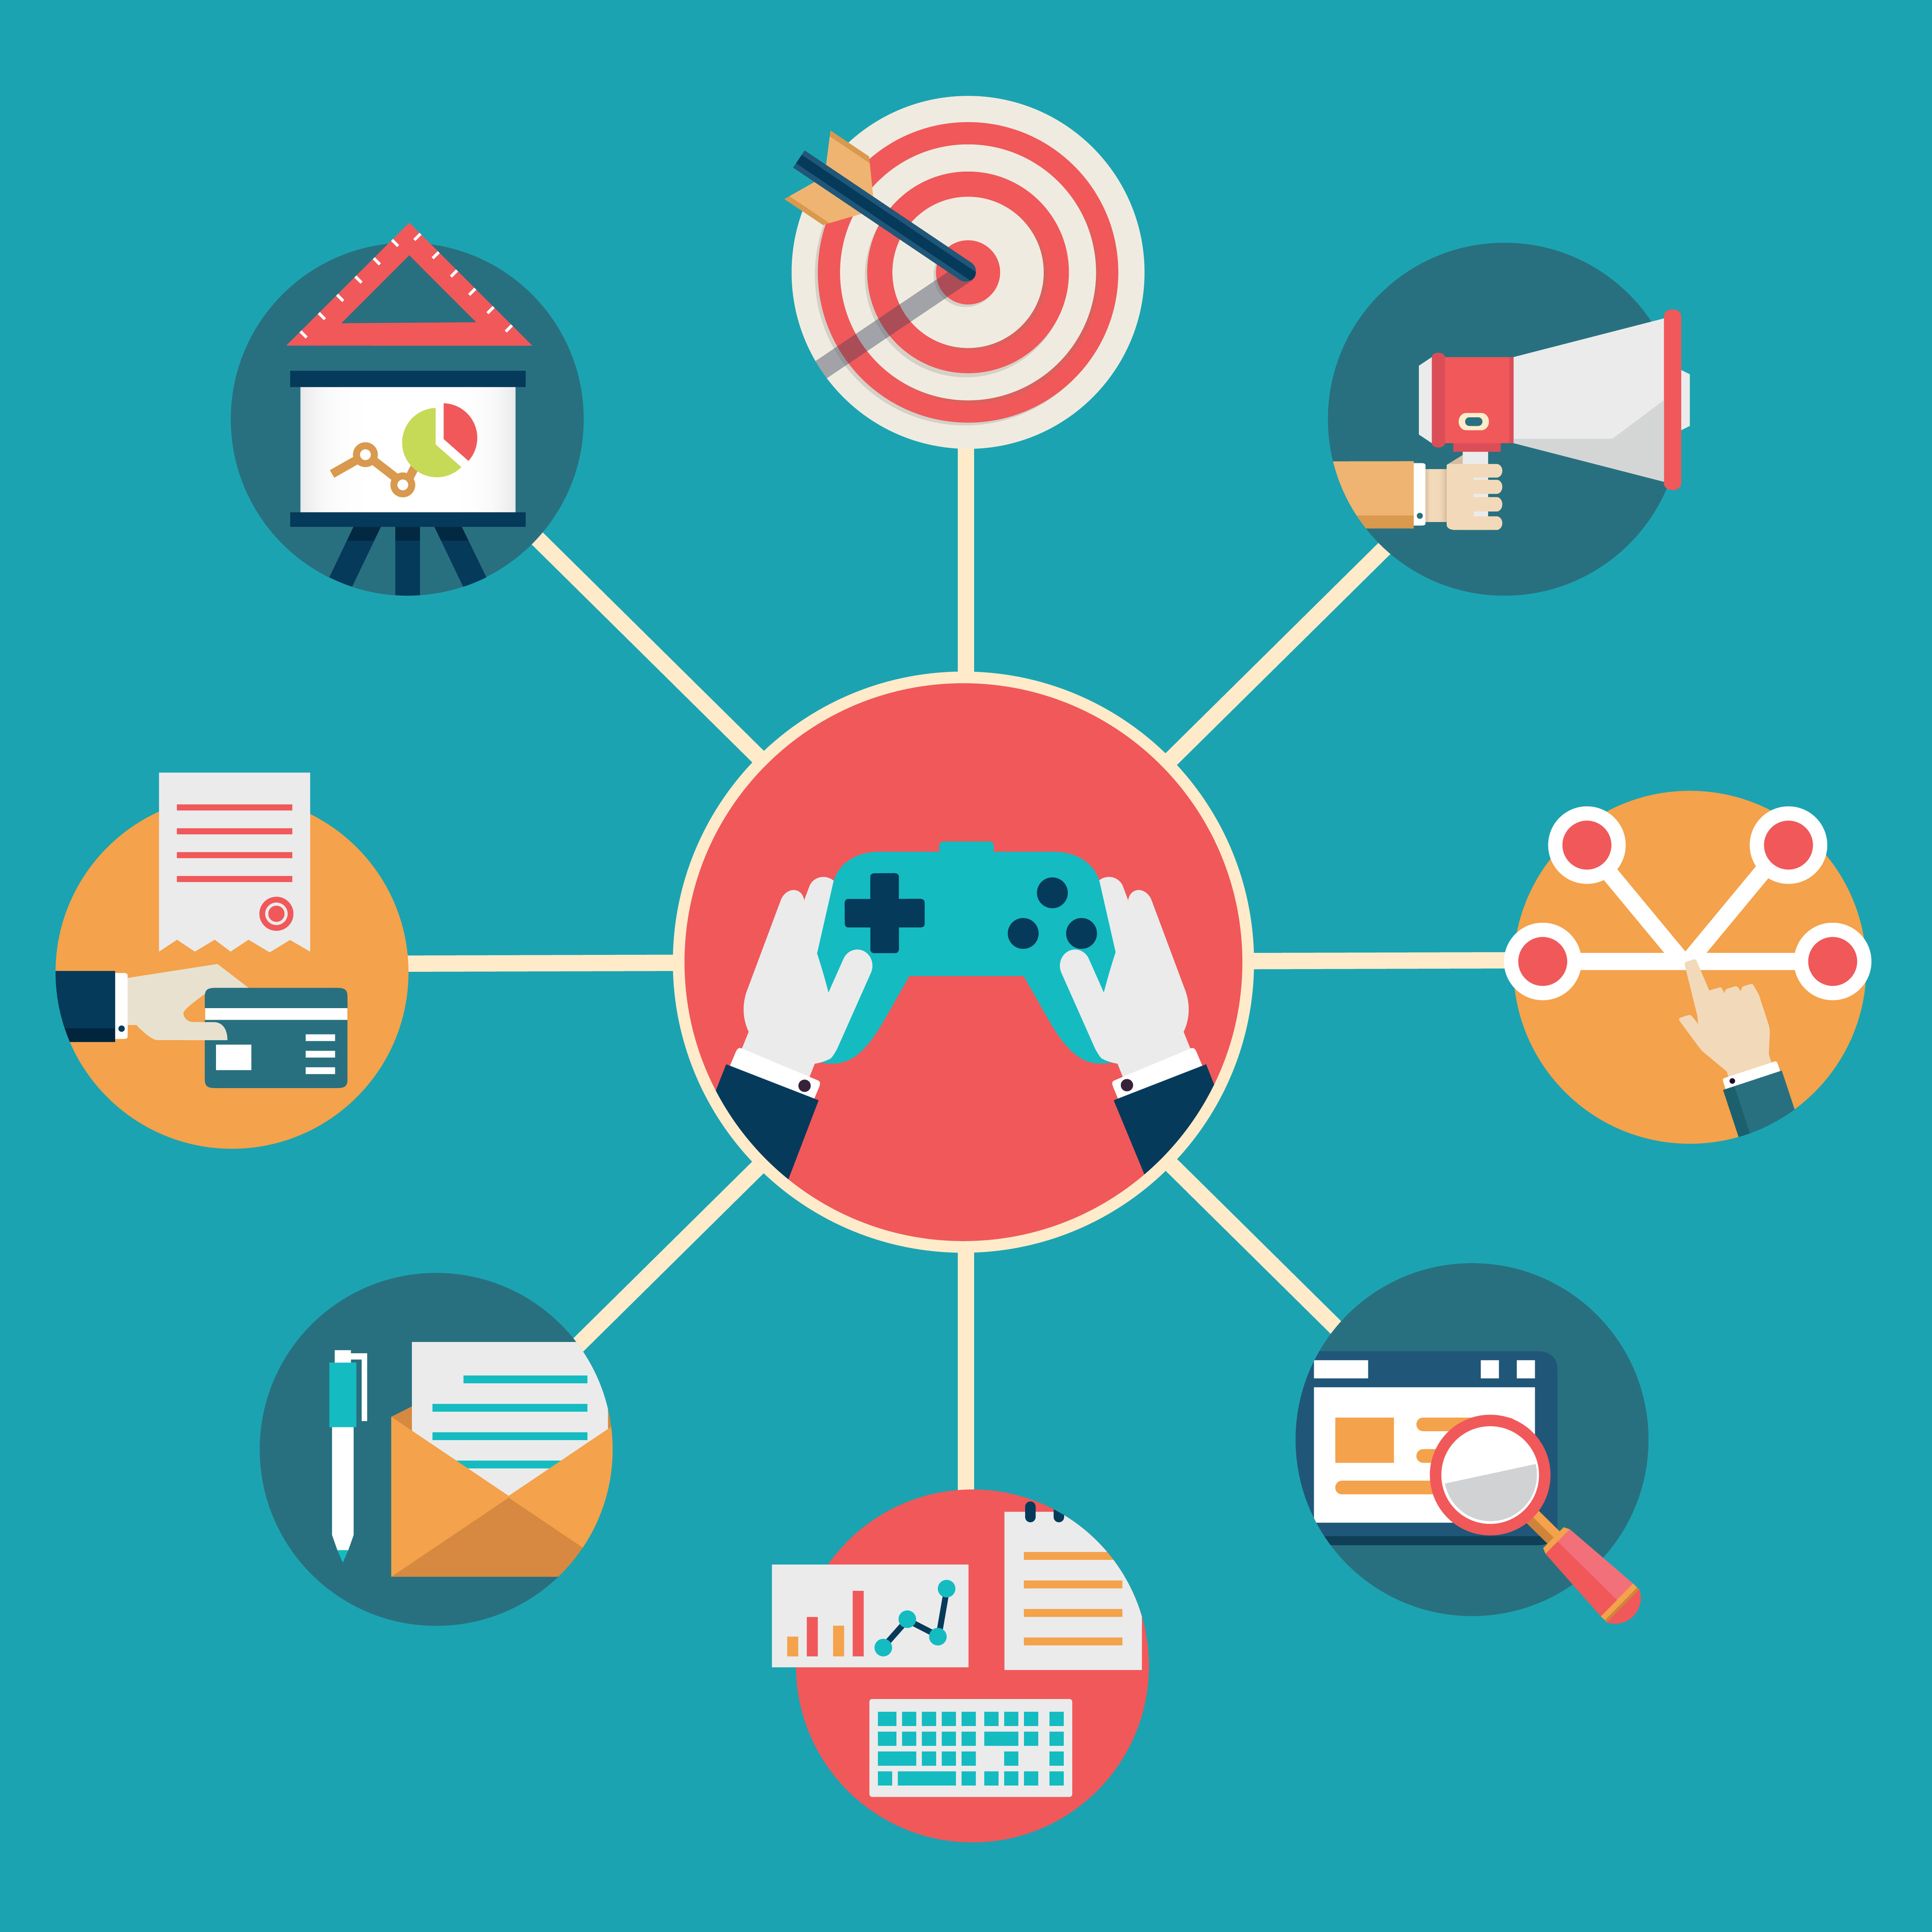 Gamification 2